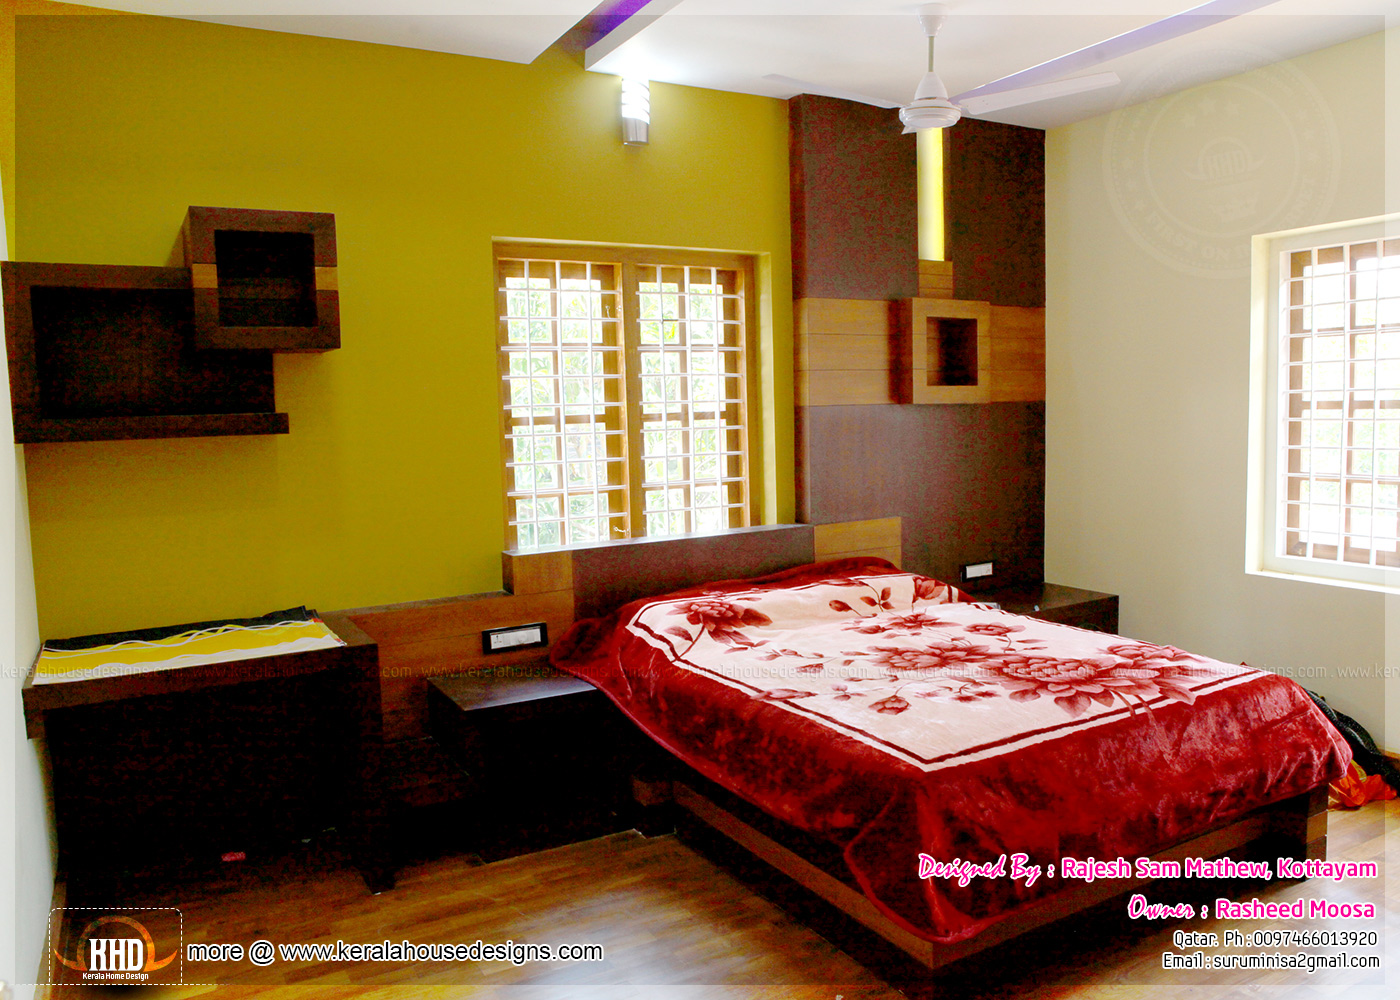 Kerala Interior Design With Photos Home And Floor Part 40